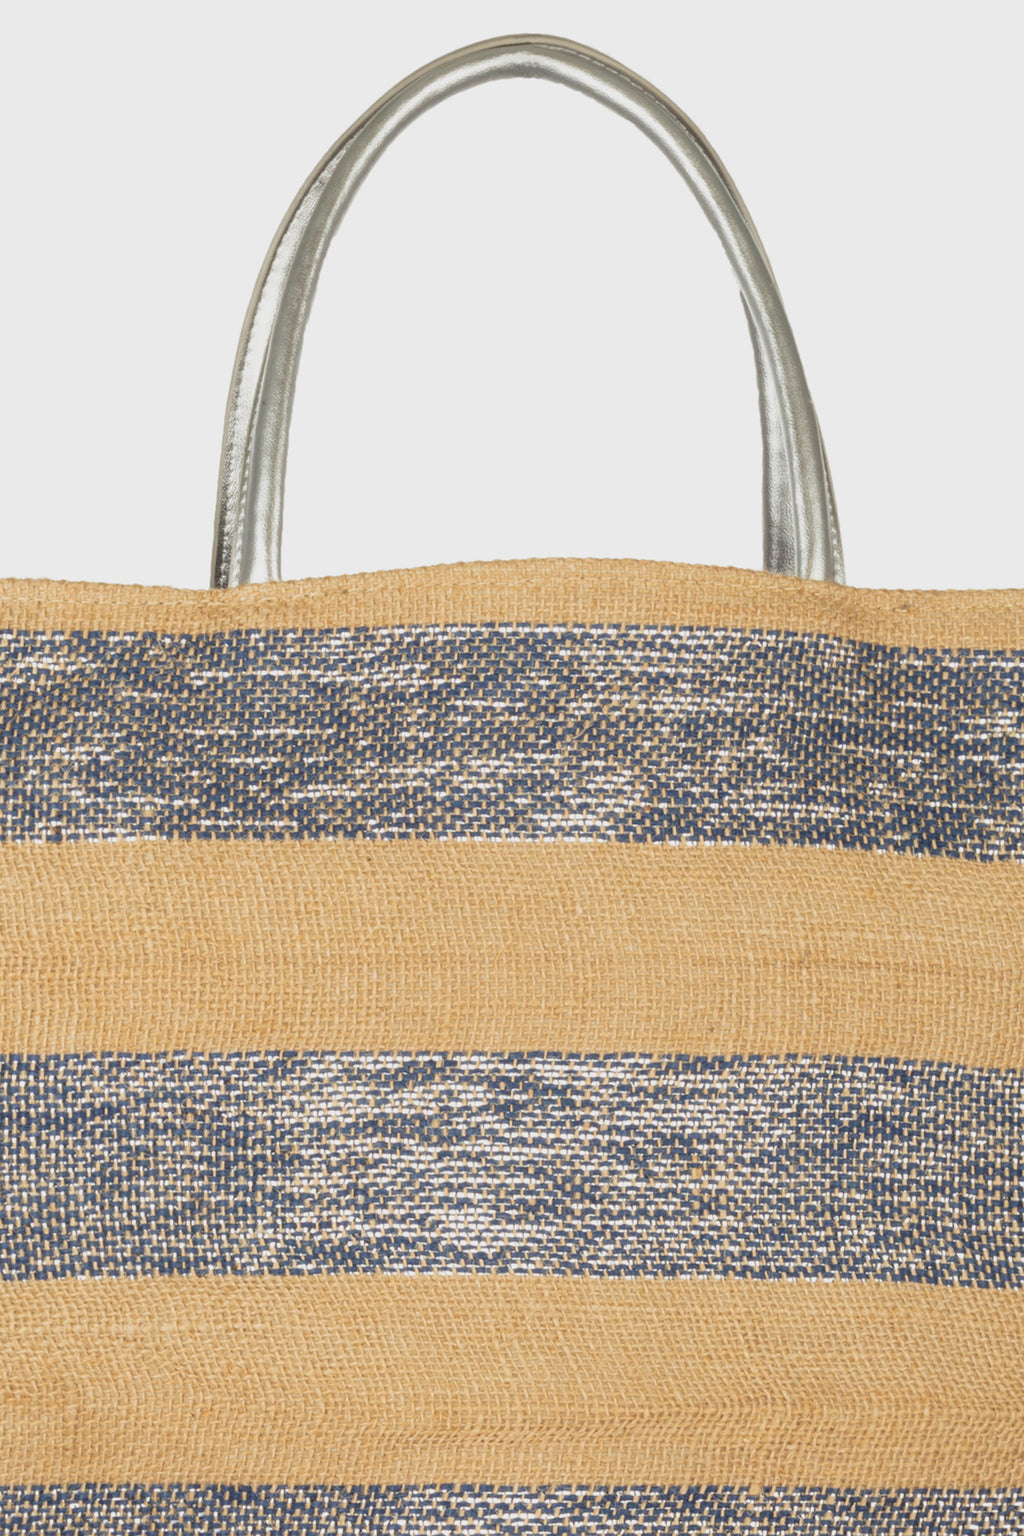 Striped Tote With Metallic Silver Leather Handles (BSB3755)-TOTE-BaySky